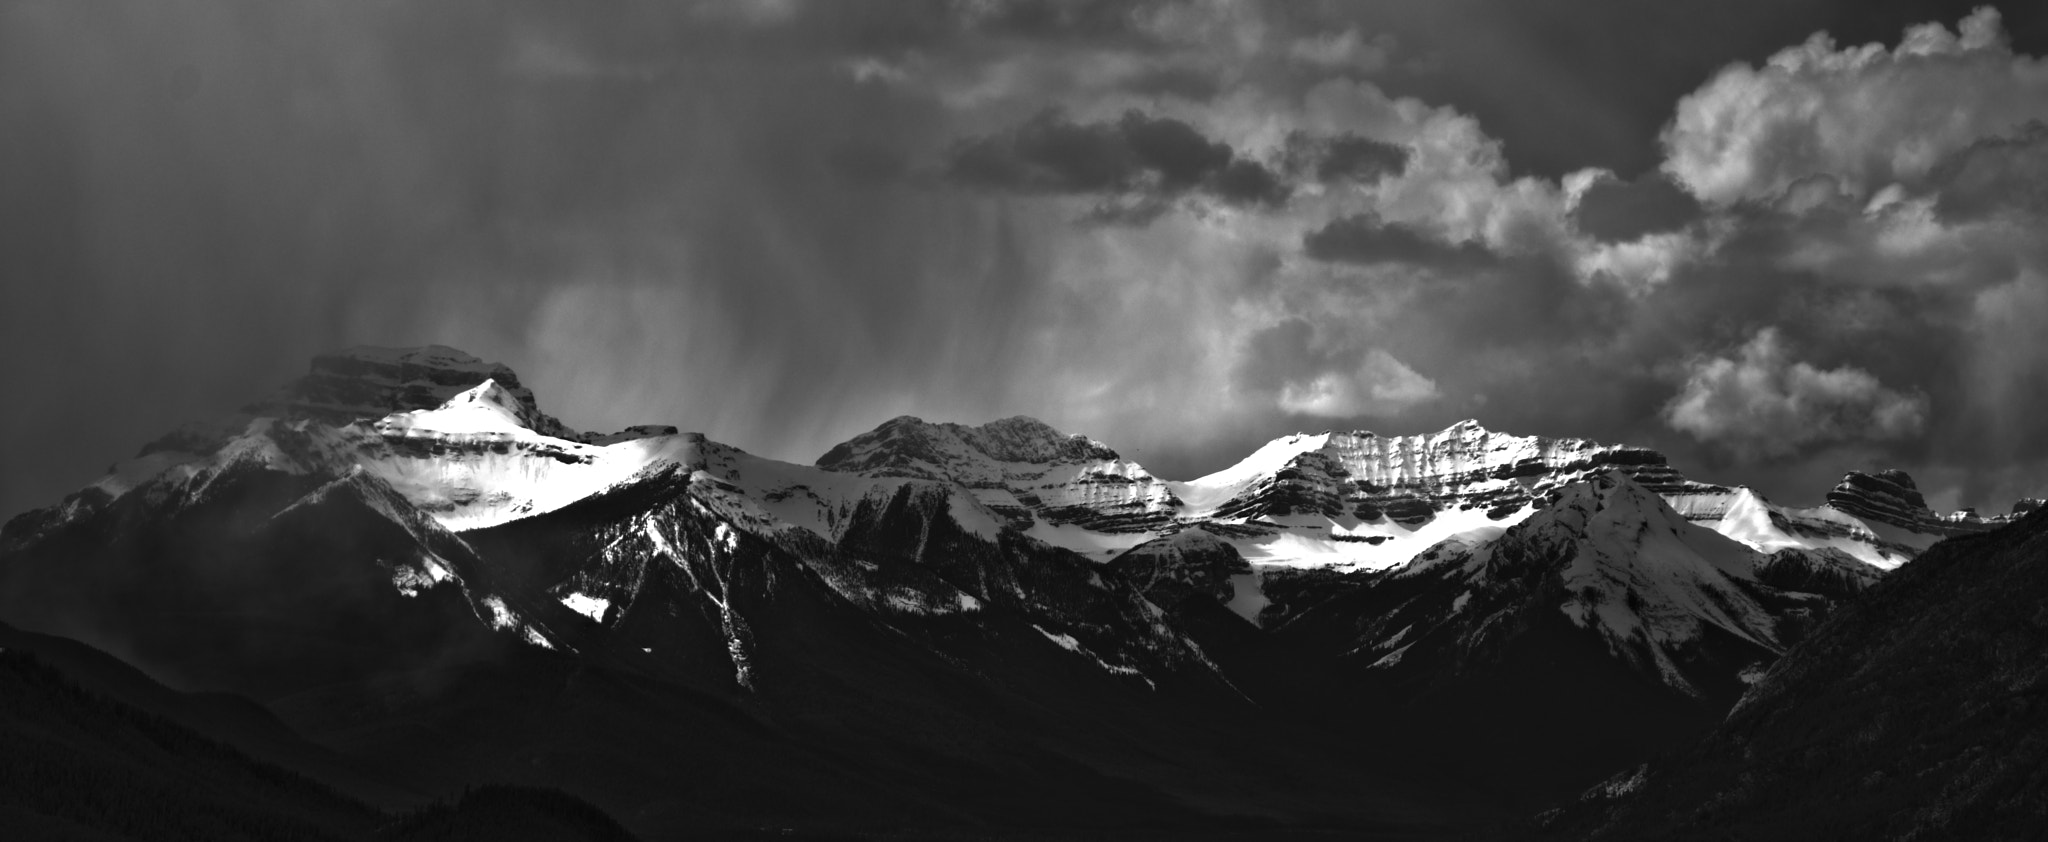 Photograph Rockies, Facing West by Mitchell Buchanan on 500px